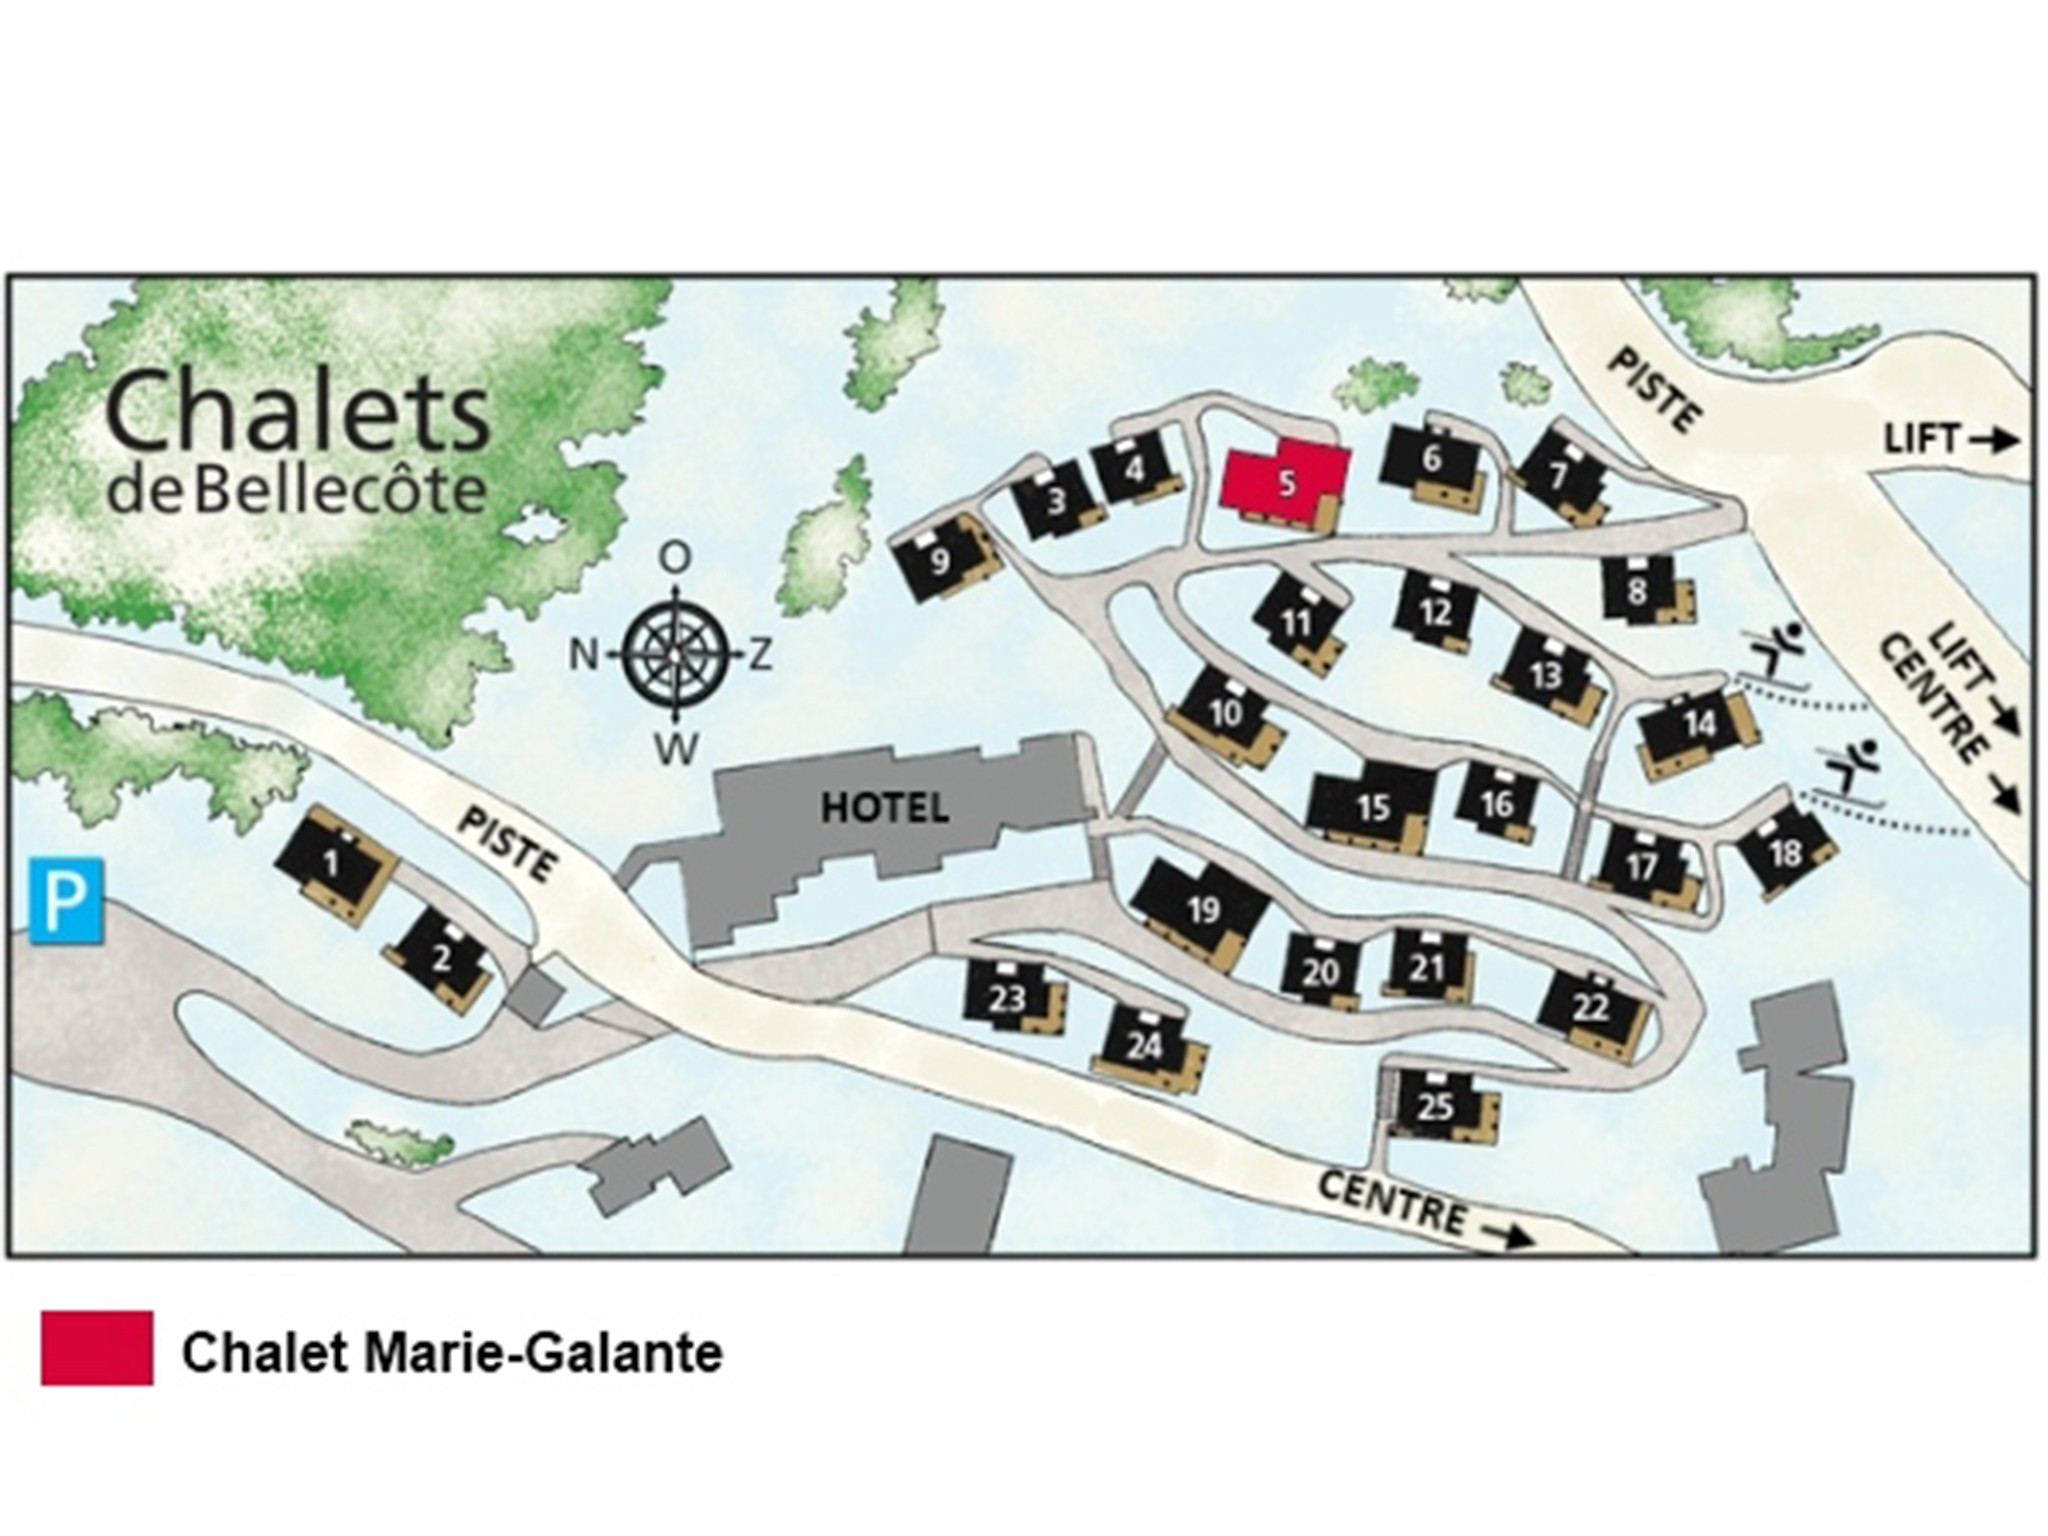 Chalet de Bellecôte Marie-Galante - location map